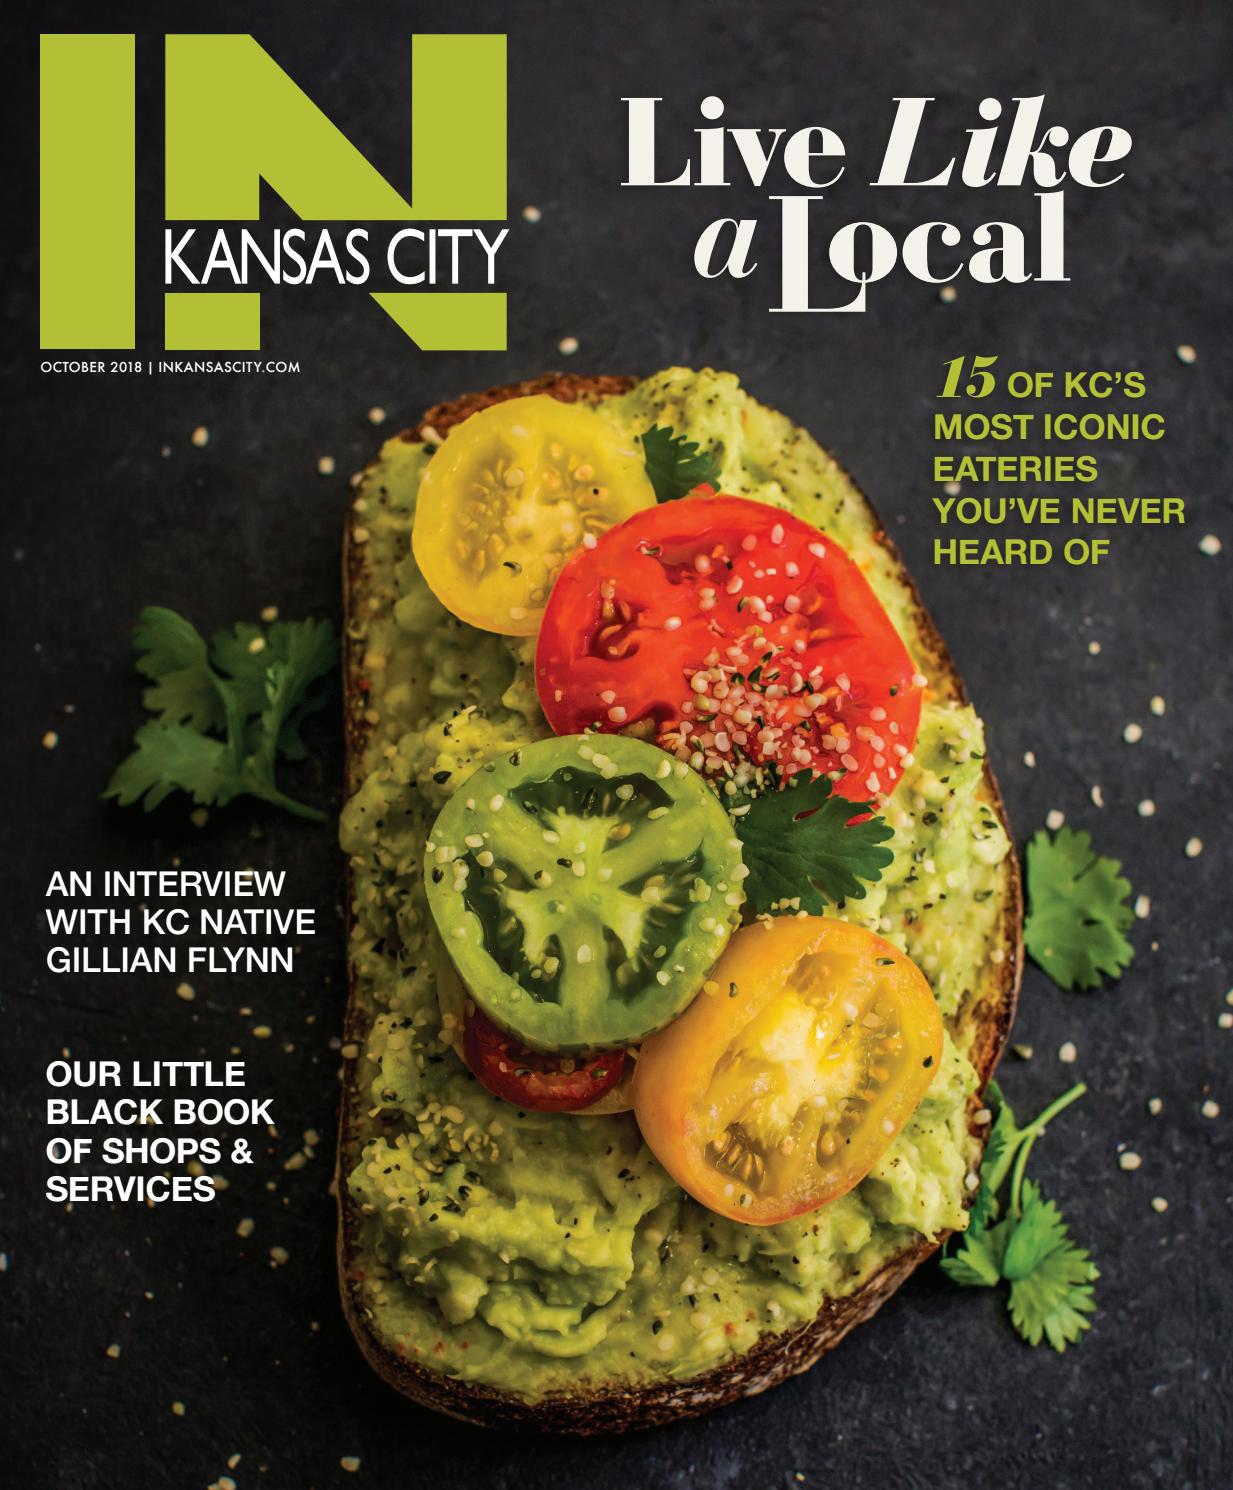 IN Kansas City October 2018 by KC Media - issuu